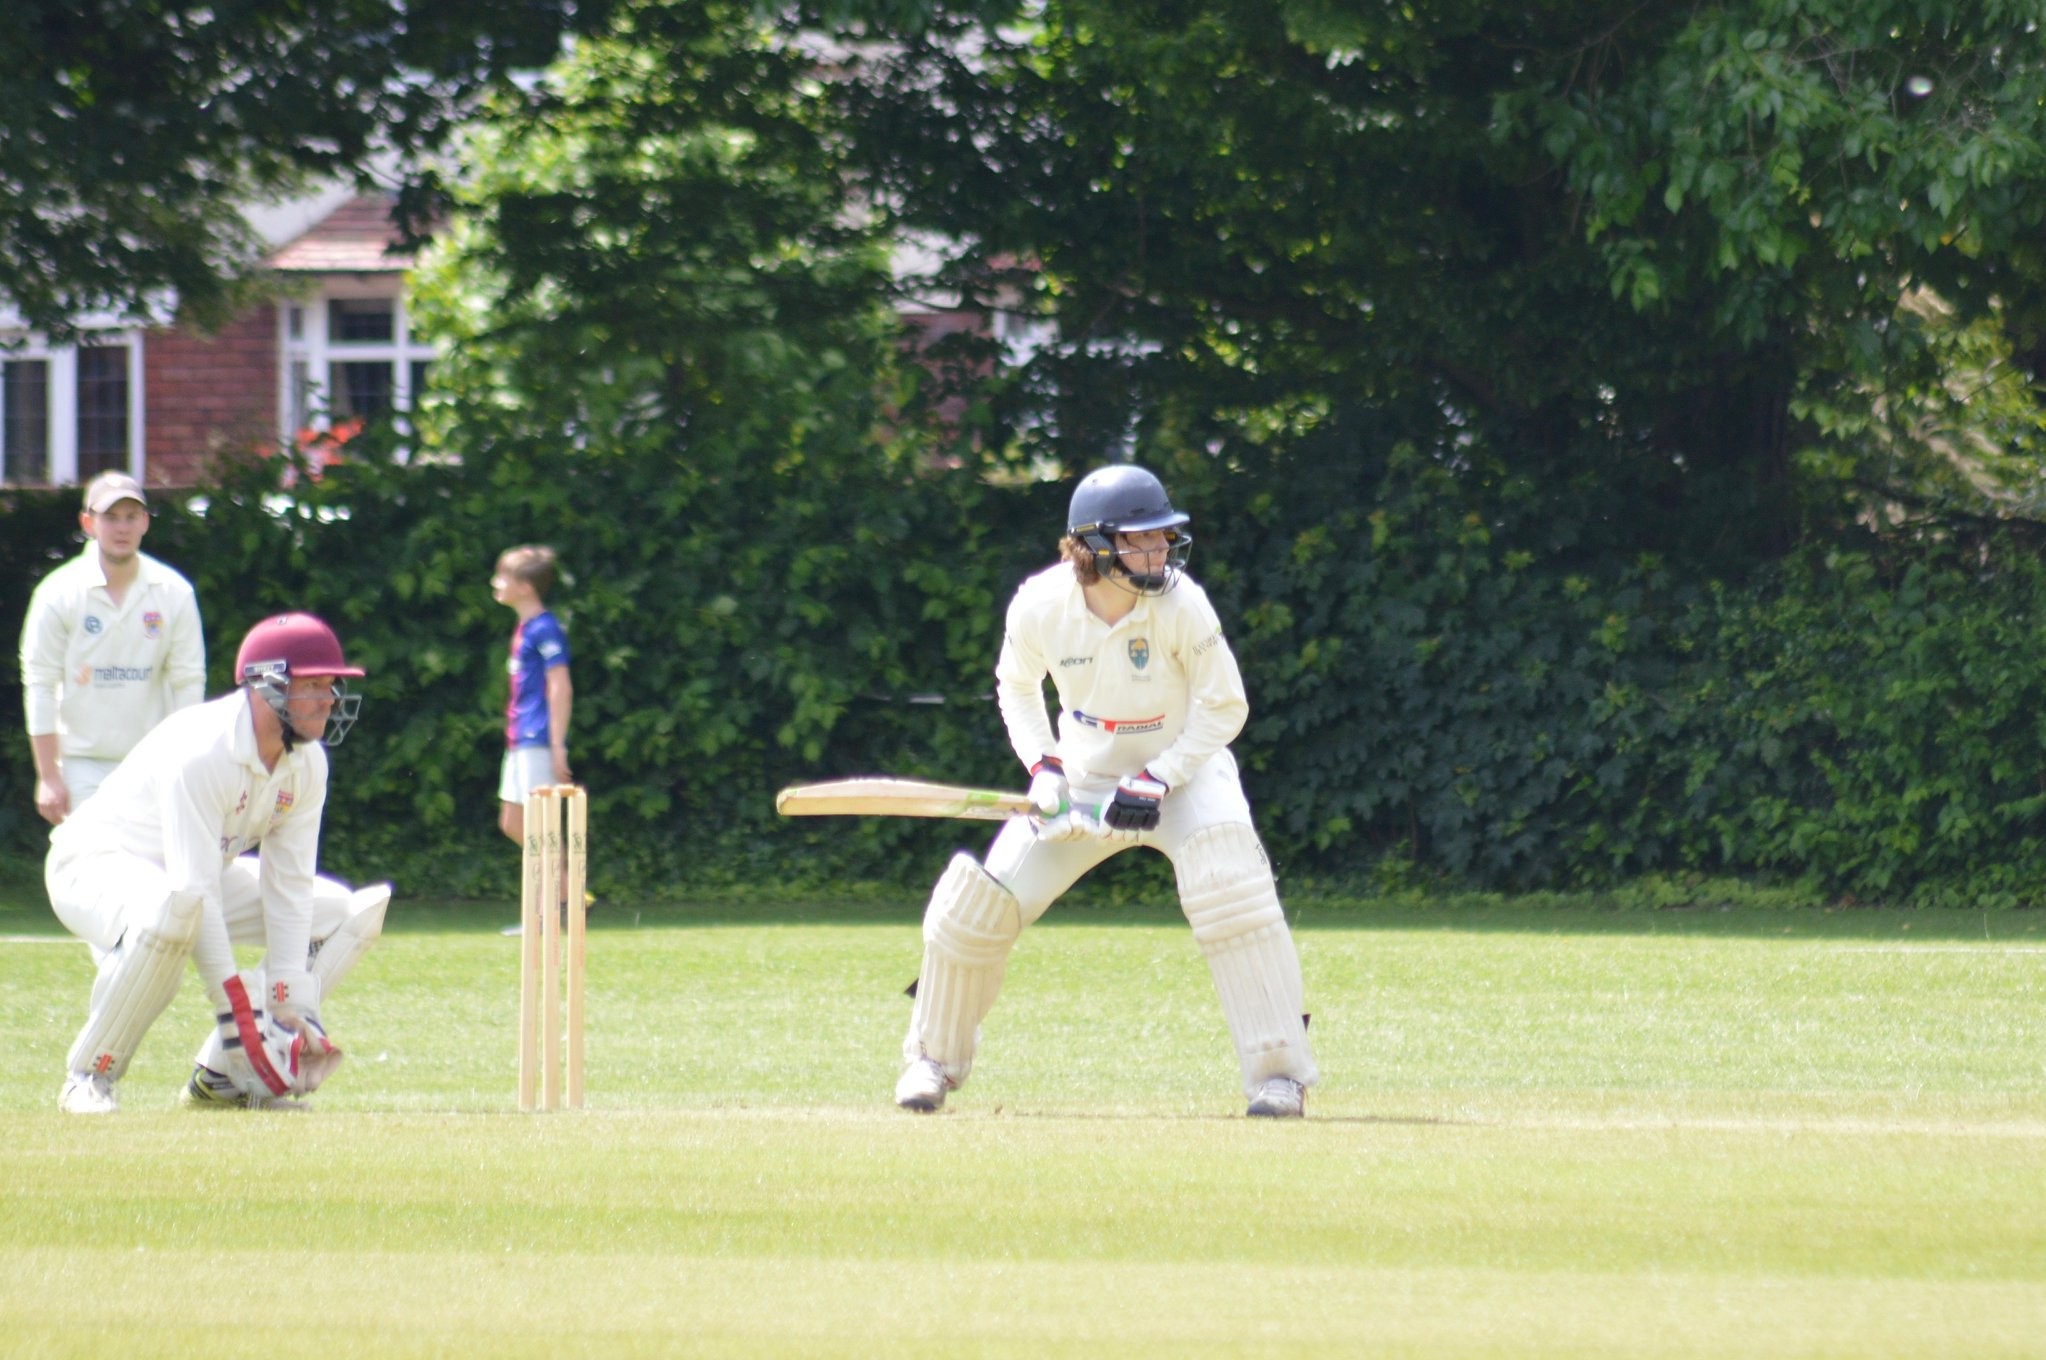 Dahlenburg Century Leads 1stXI to Victory at Port Sunlight